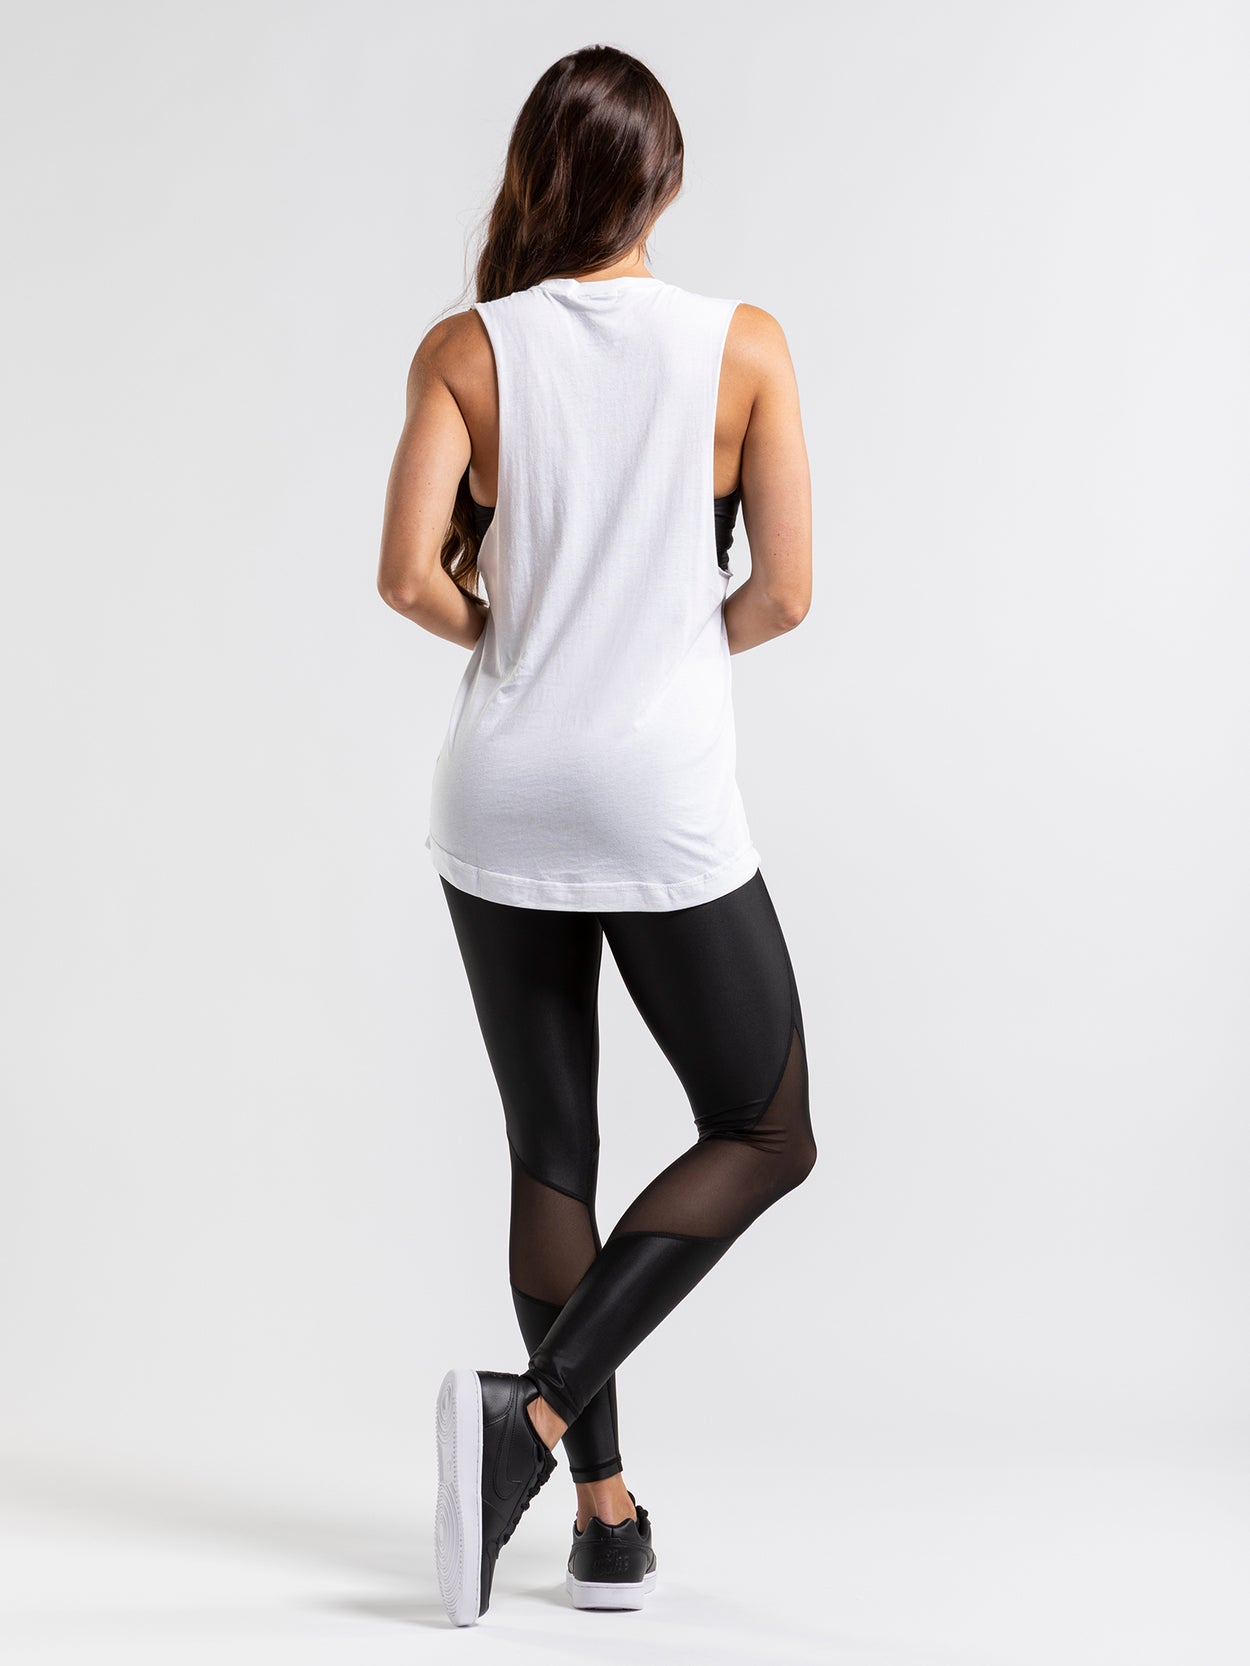 Lightweight white muscle tank with black shooting star print.